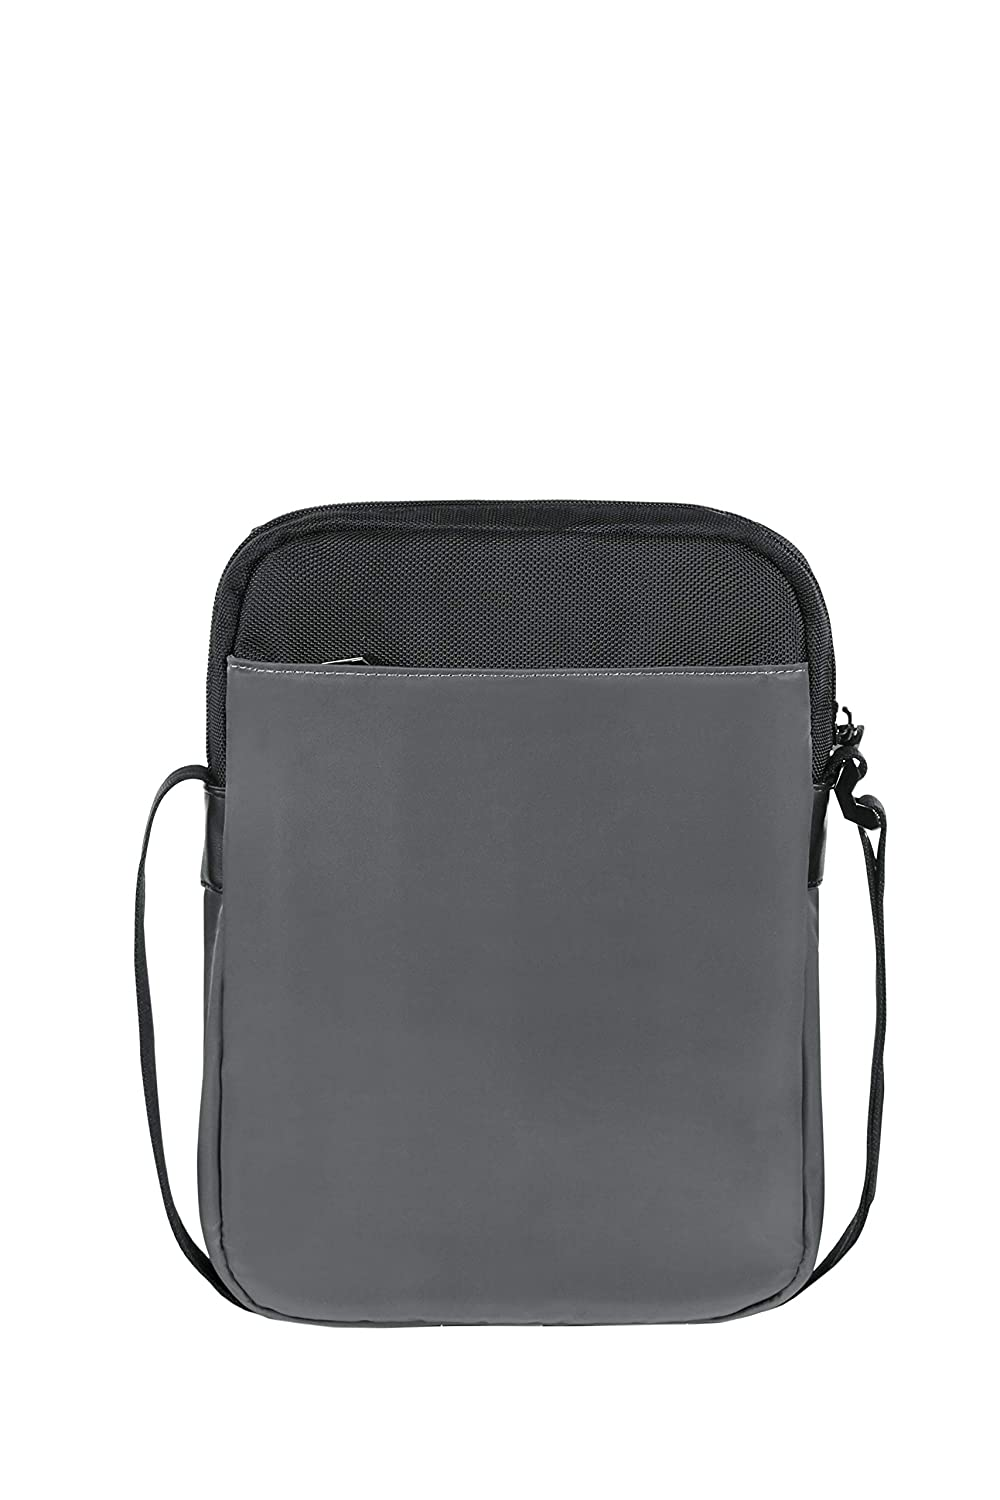 4.5 Litre Eclipse Grey Large Tablet Shoulder Bag SAMSONITE Openroad 29 cm